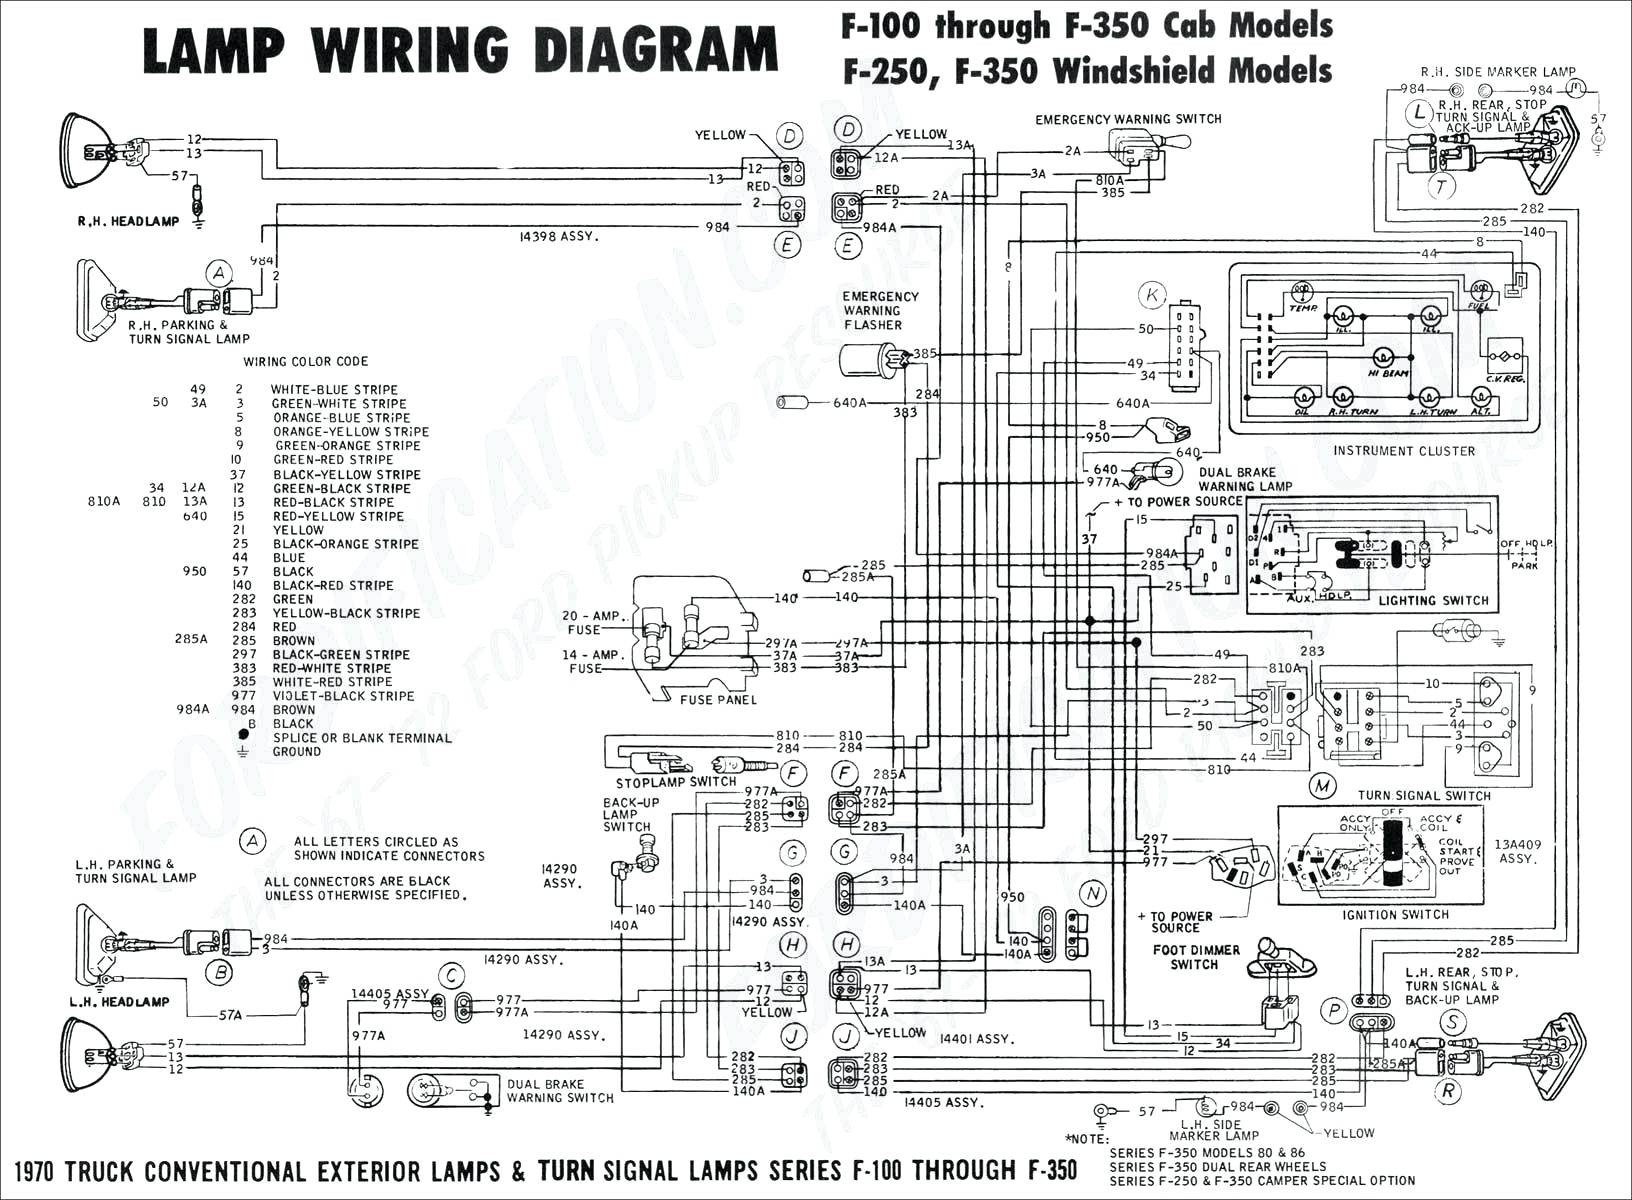 [ANLQ_8698]  Wiring Diagram 2015 Gmc 2500 - 2003 Dodge Ram Radio Wiring for Wiring  Diagram Schematics | 2015 Gmc Wiring Diagram |  | Wiring Diagram Schematics